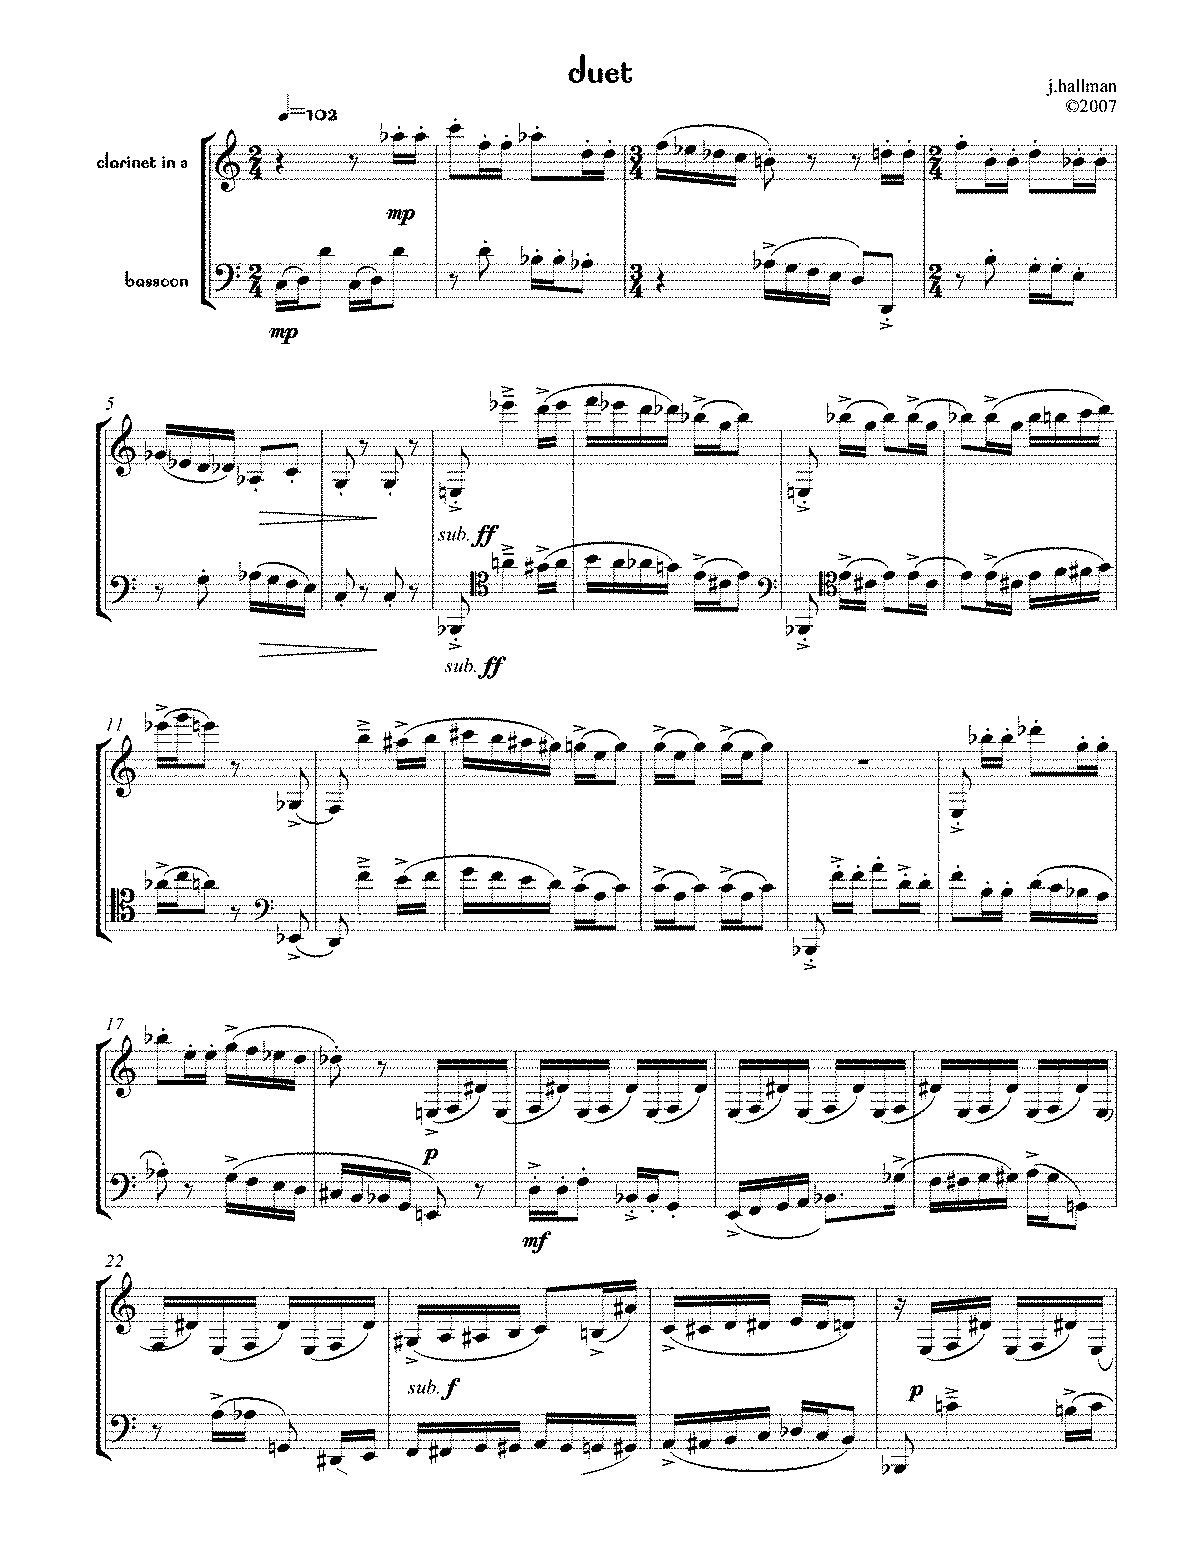 Duet for clarinet and bassoon.pdf